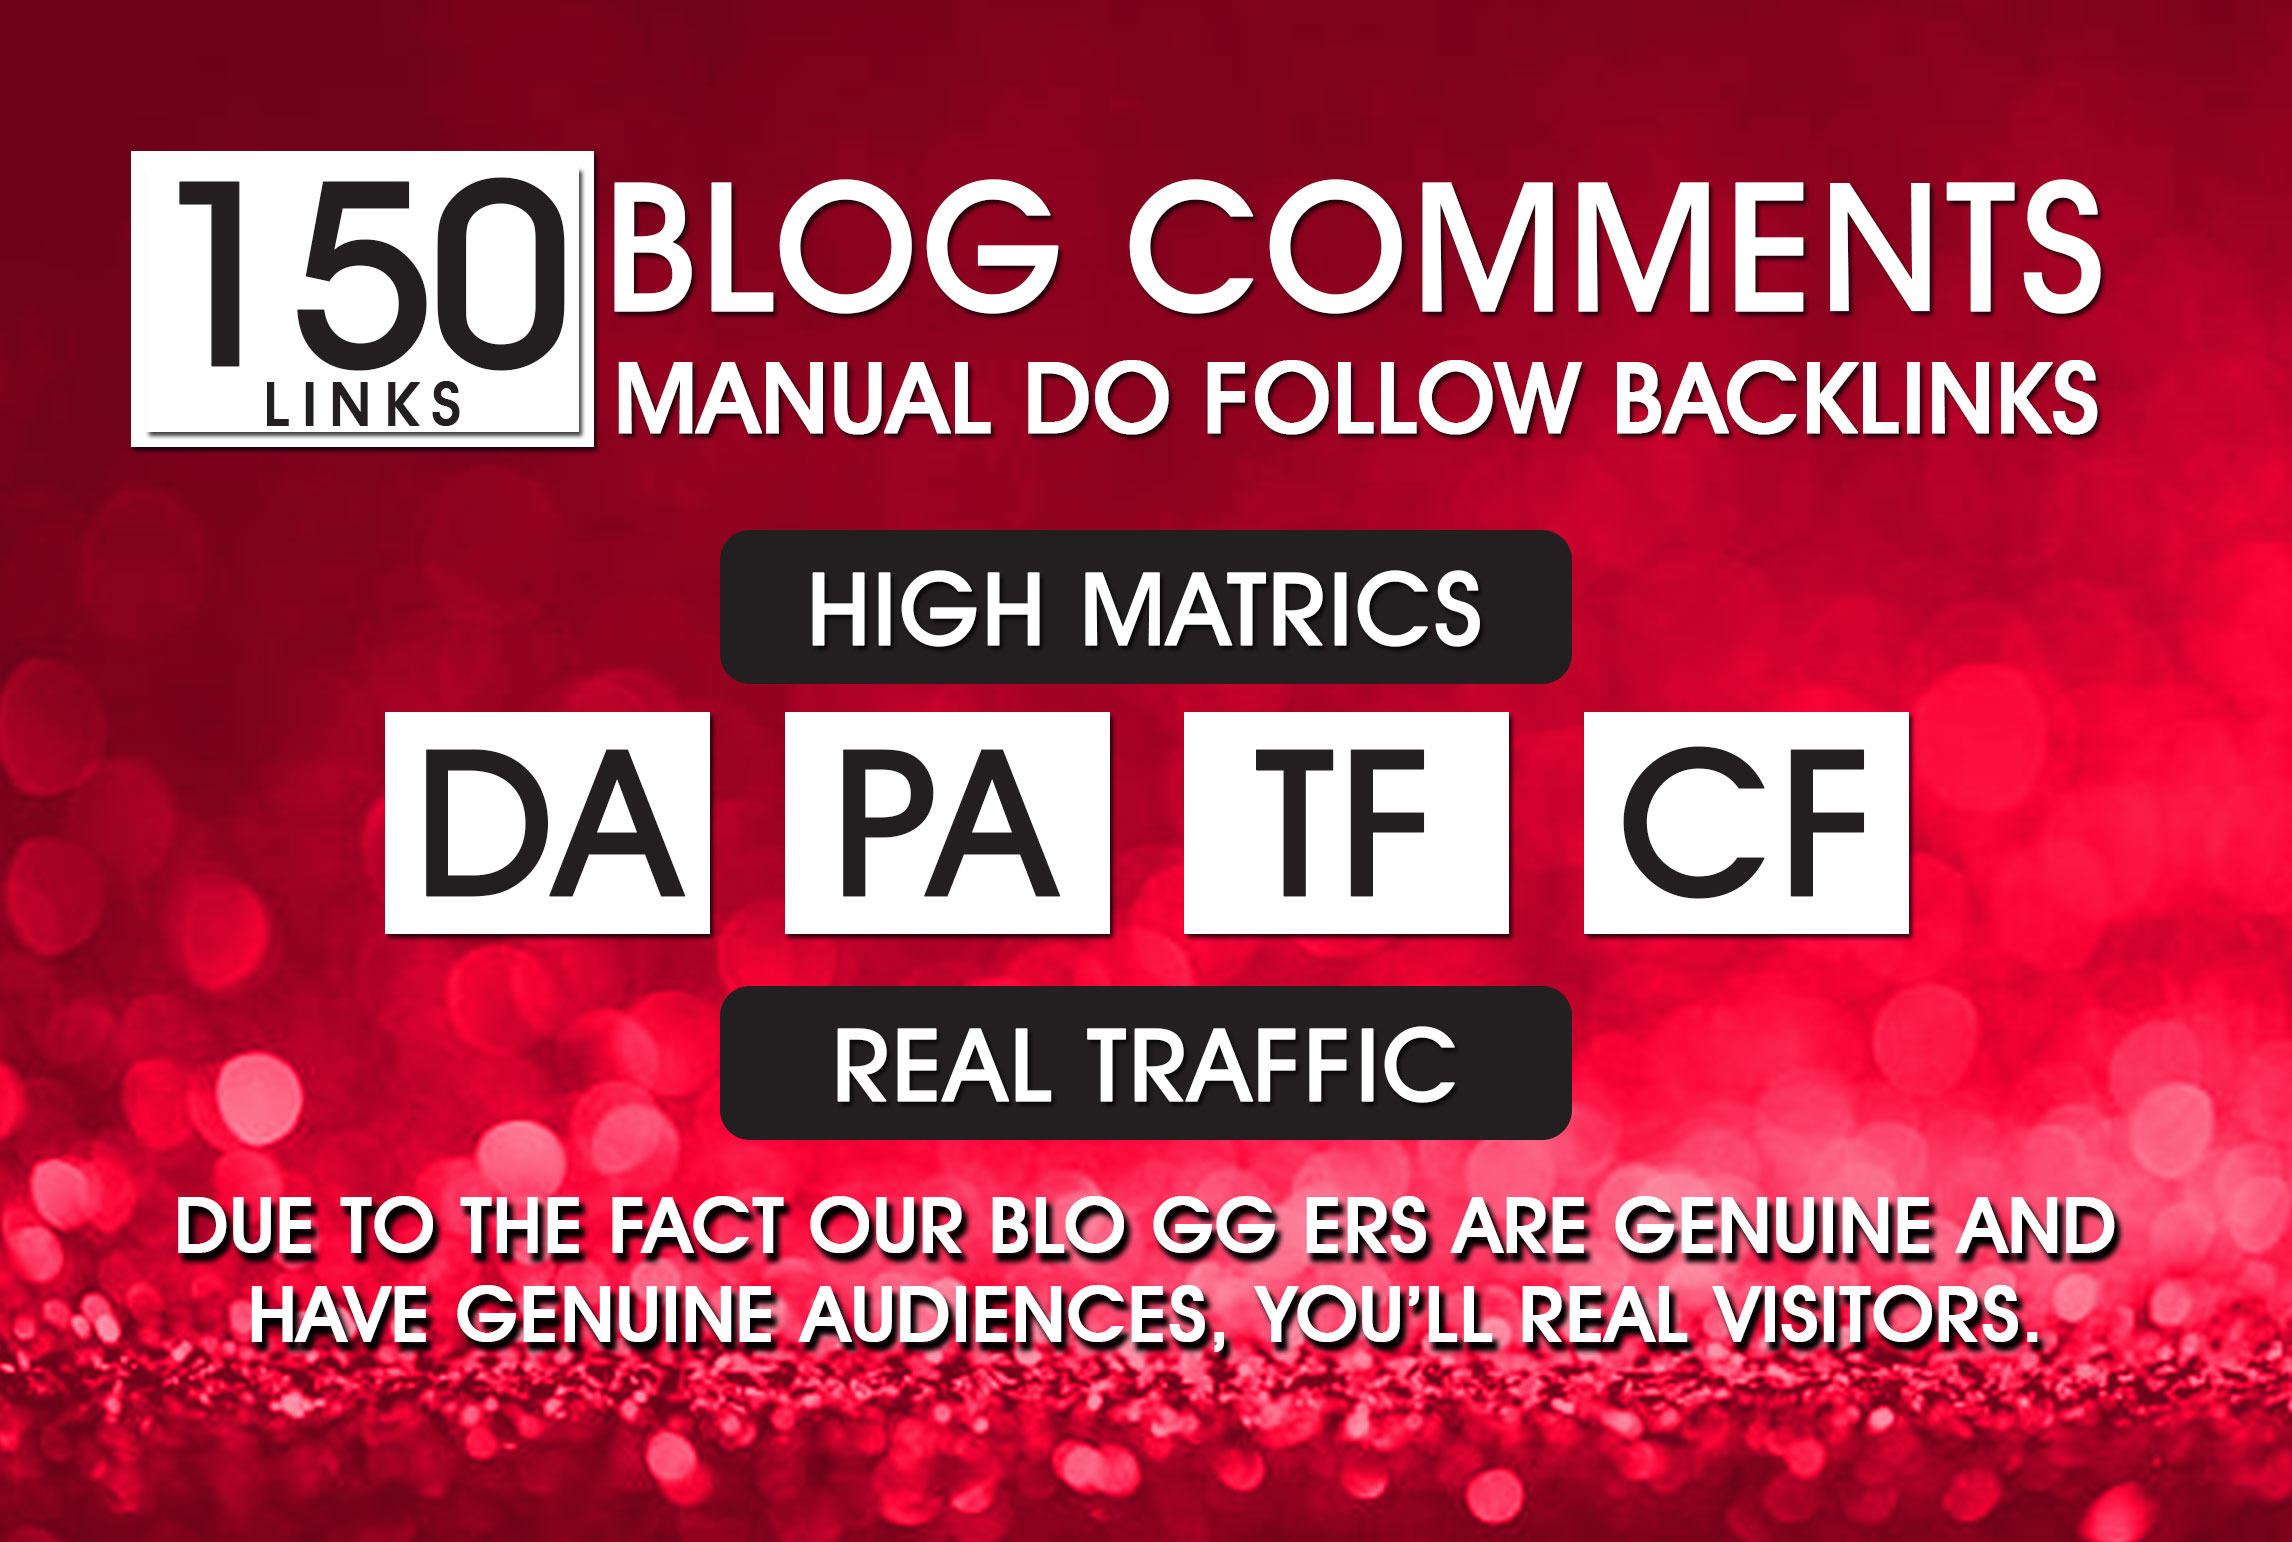 150 unique domain Blog Comment Backlinks High Tf Cf Da Pa 30 Plus